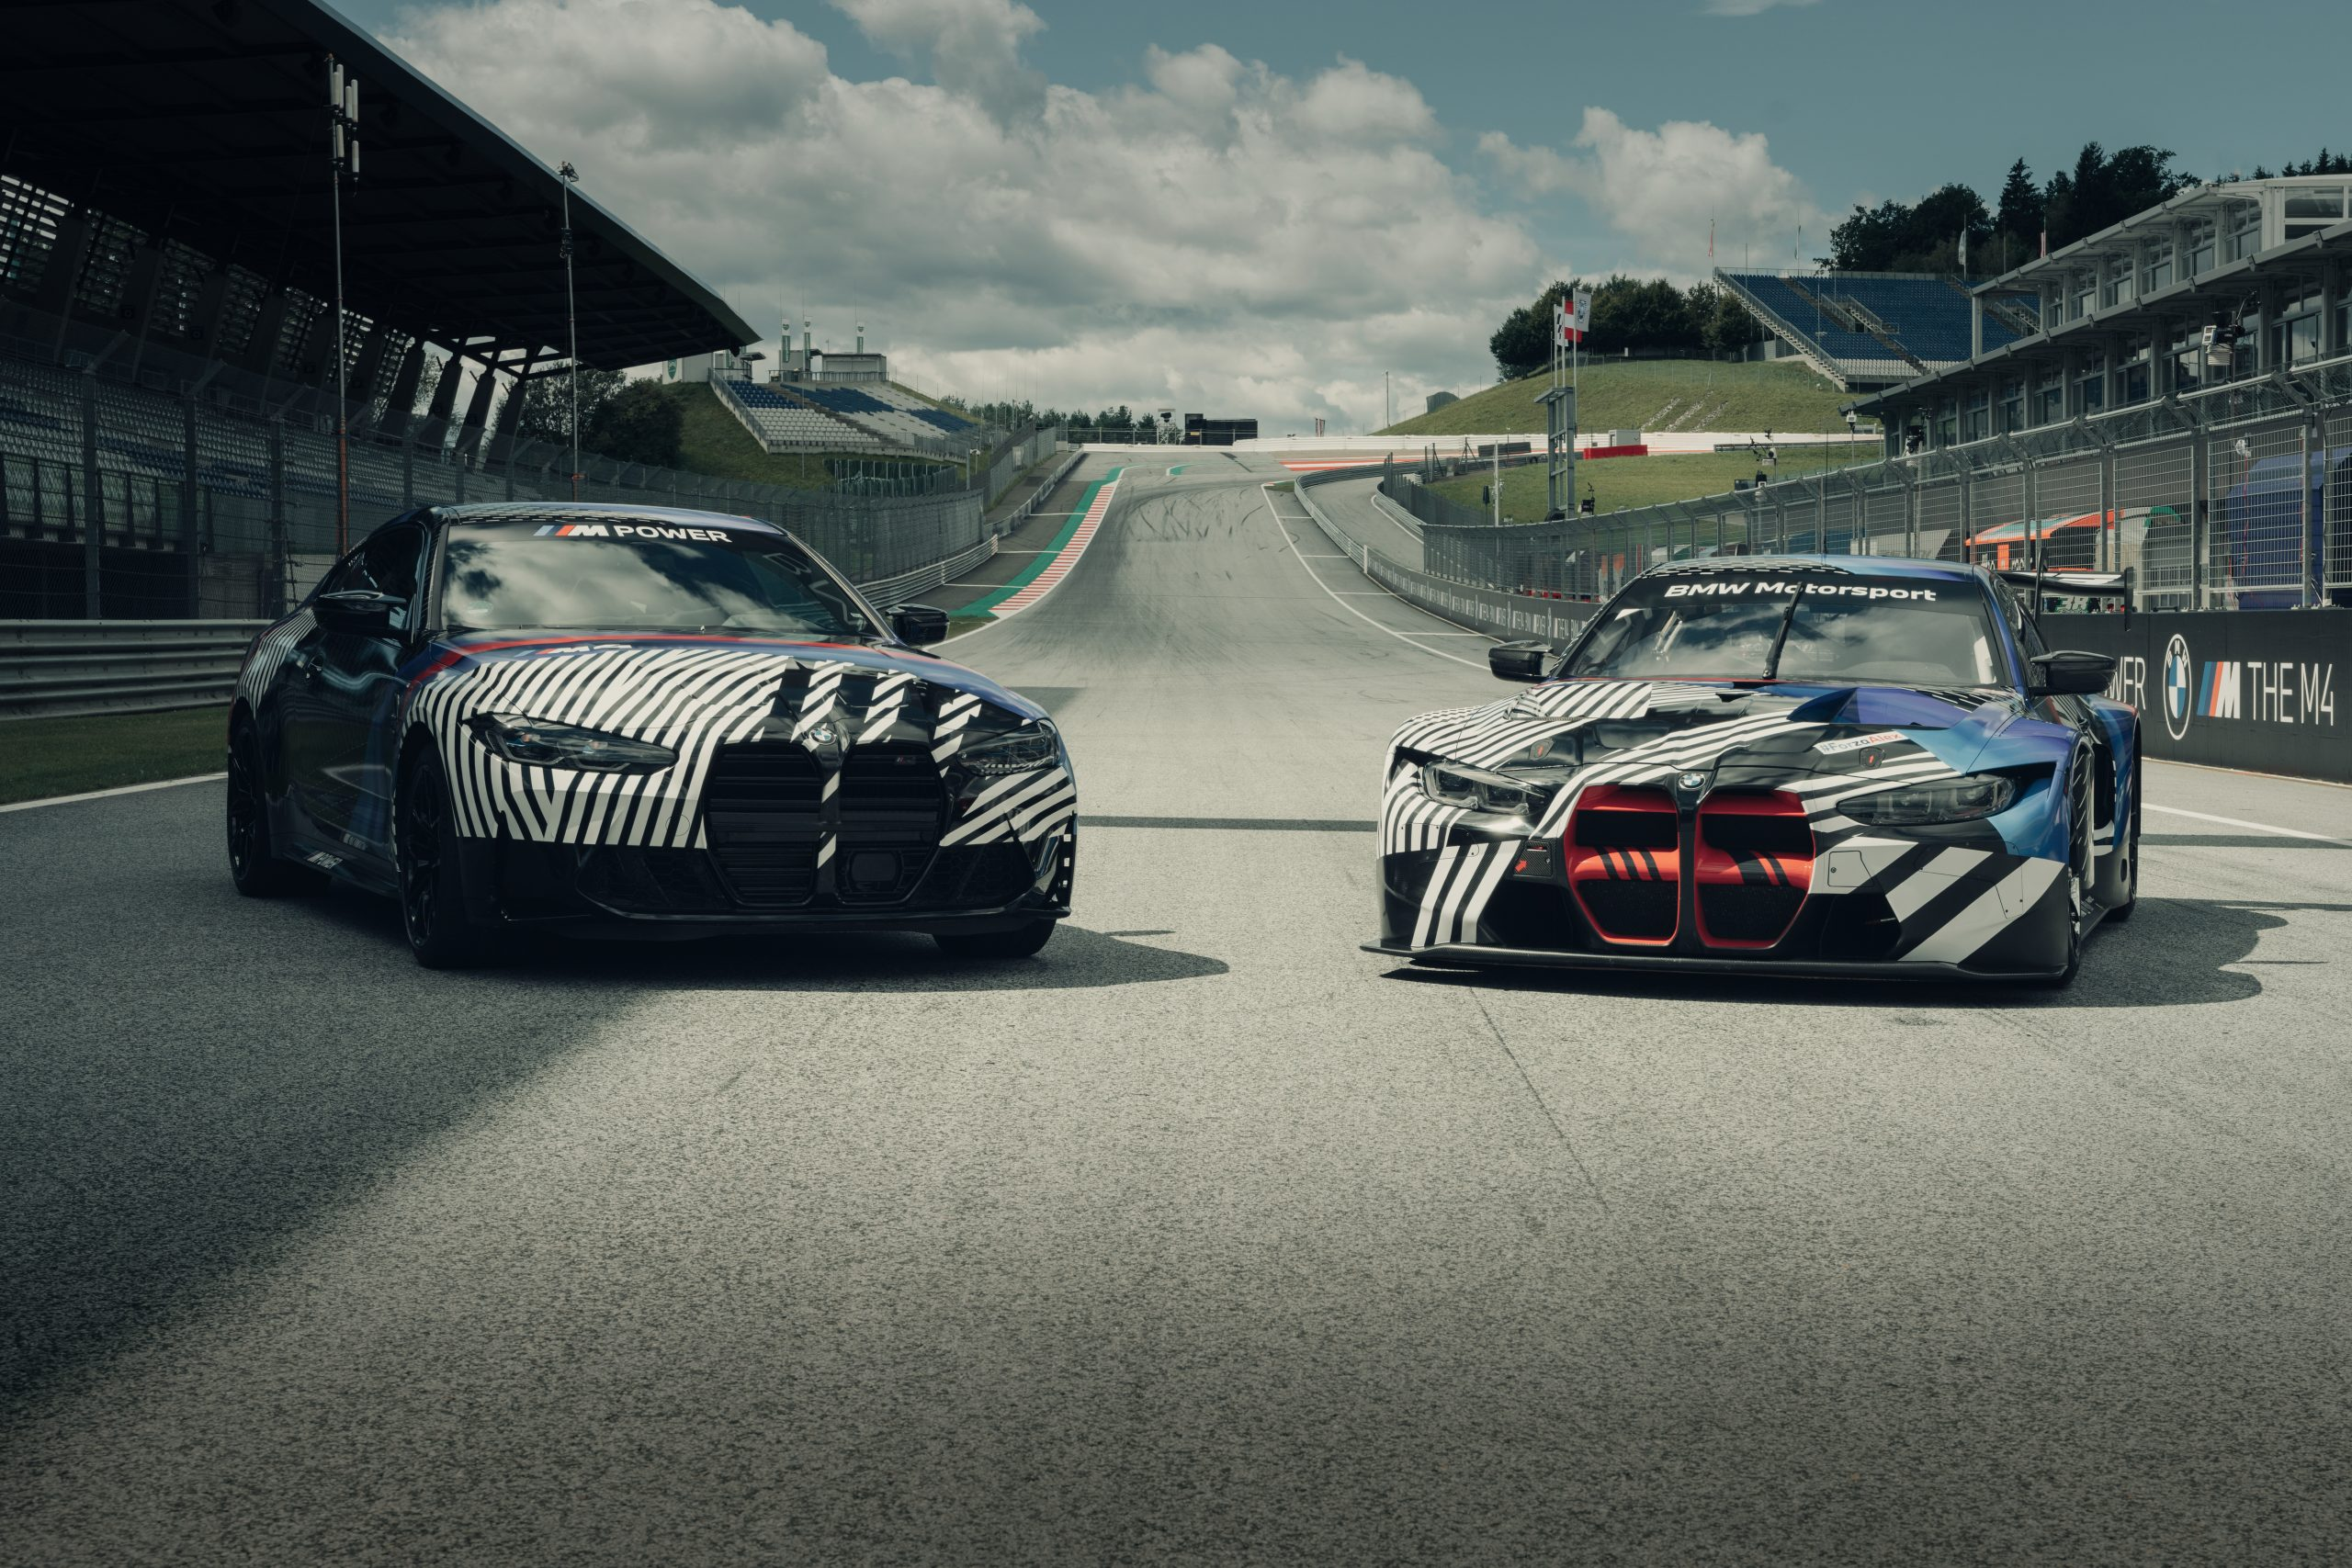 BMW M4 Coupe GT3 prototypes August 2020 Red Bull Ring